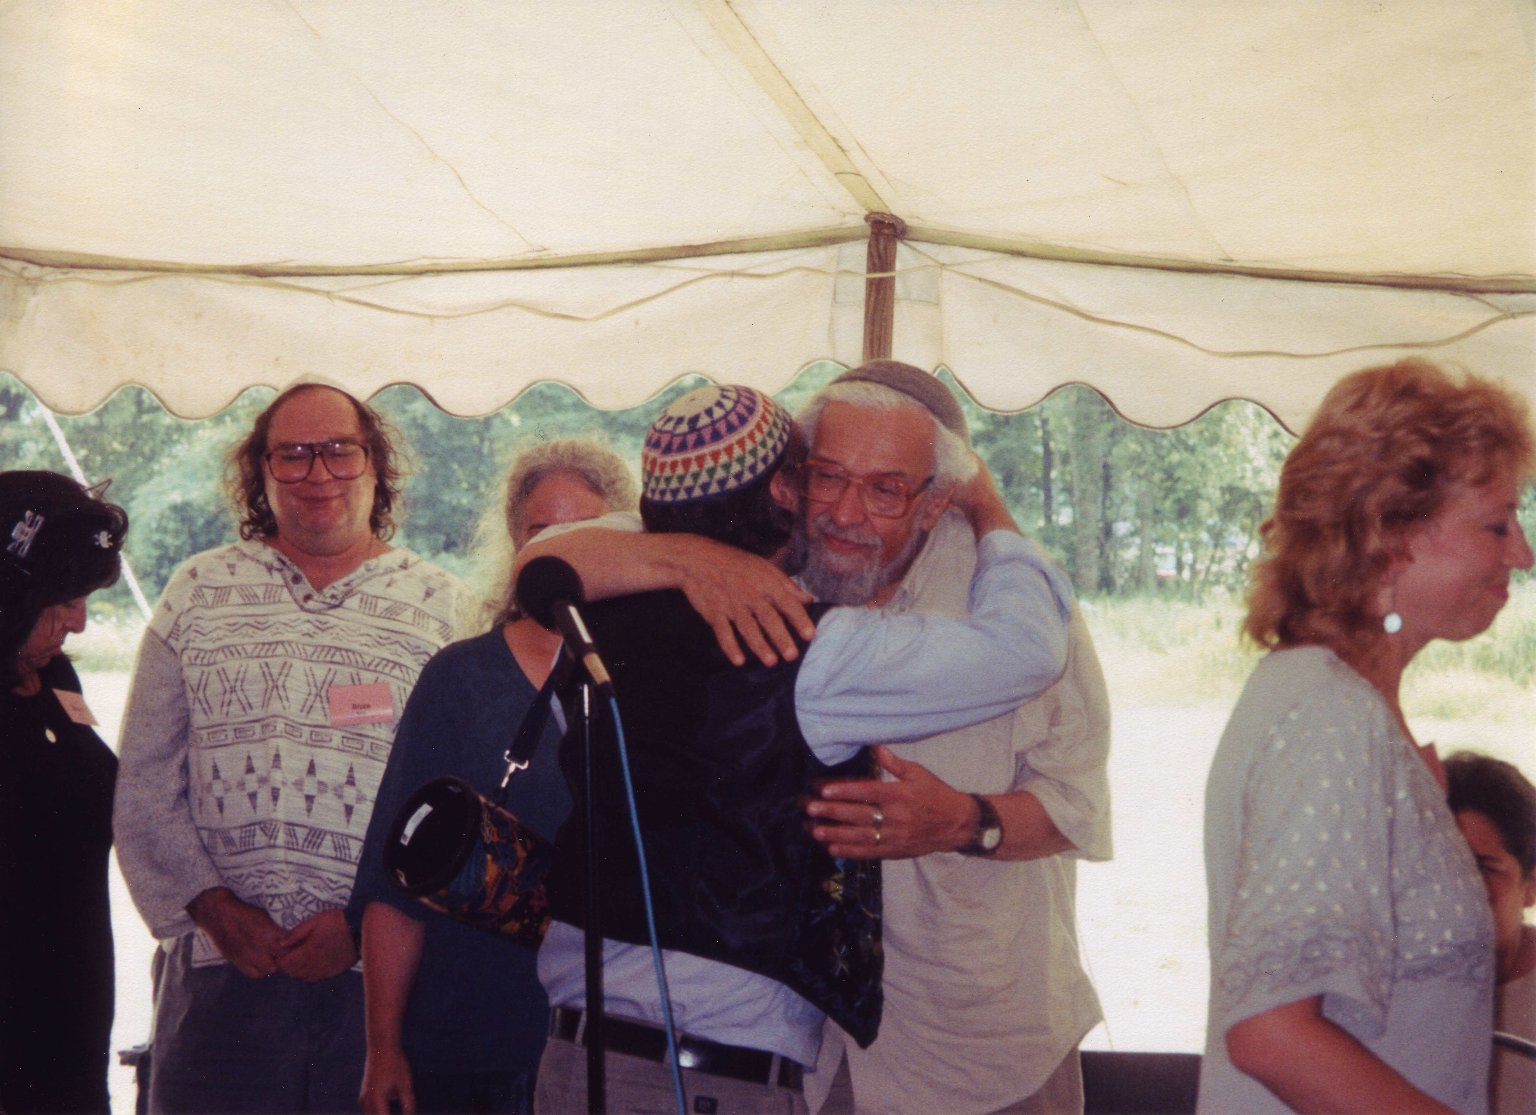 Cantor Robert Michael Esformes embracing Rabbi Zalman Schachter-Shalomi at his 75th birthday celebration at Elat Chayyim, ca. 1999.